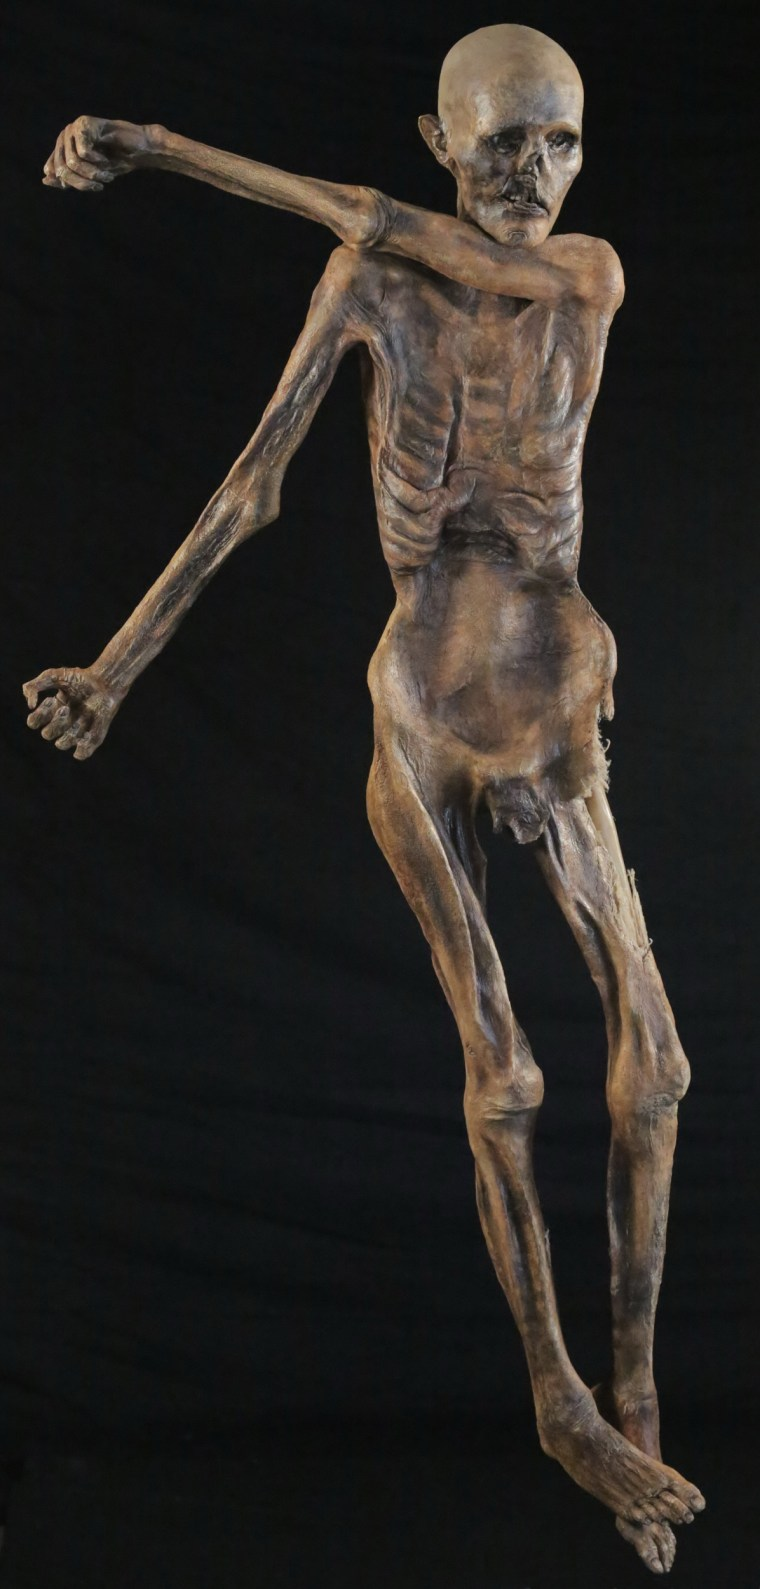 Image: A sculpture created by U.S. artist Gary Staab of Oetz, the Iceman